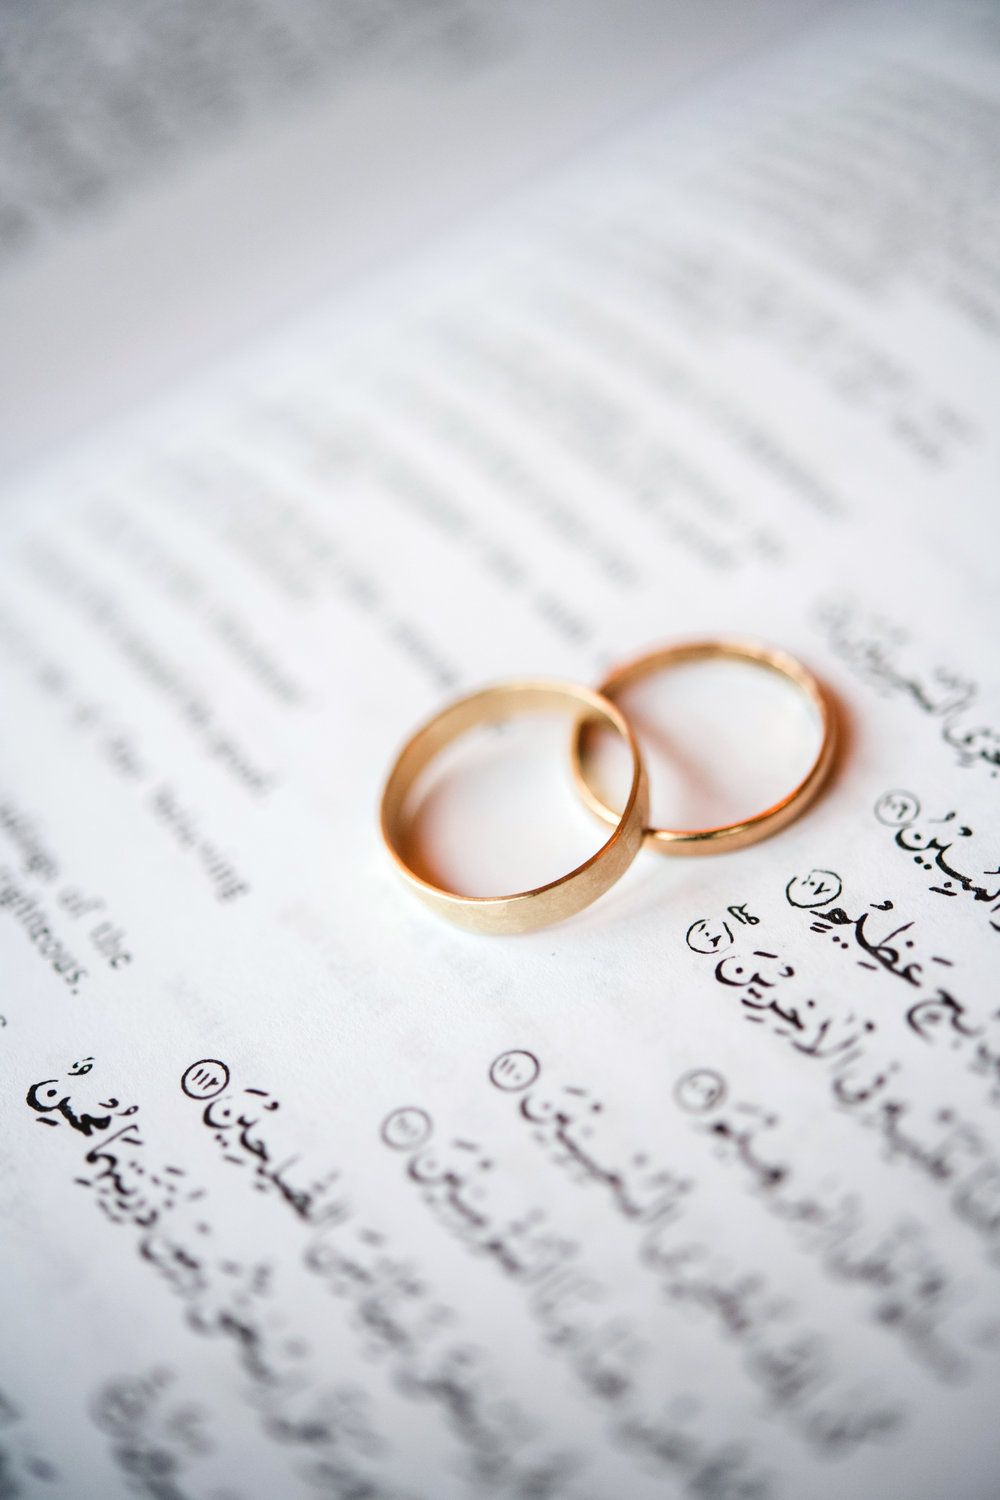 toronto-wedding-photographer-sofreh-aghd-rings.jpg